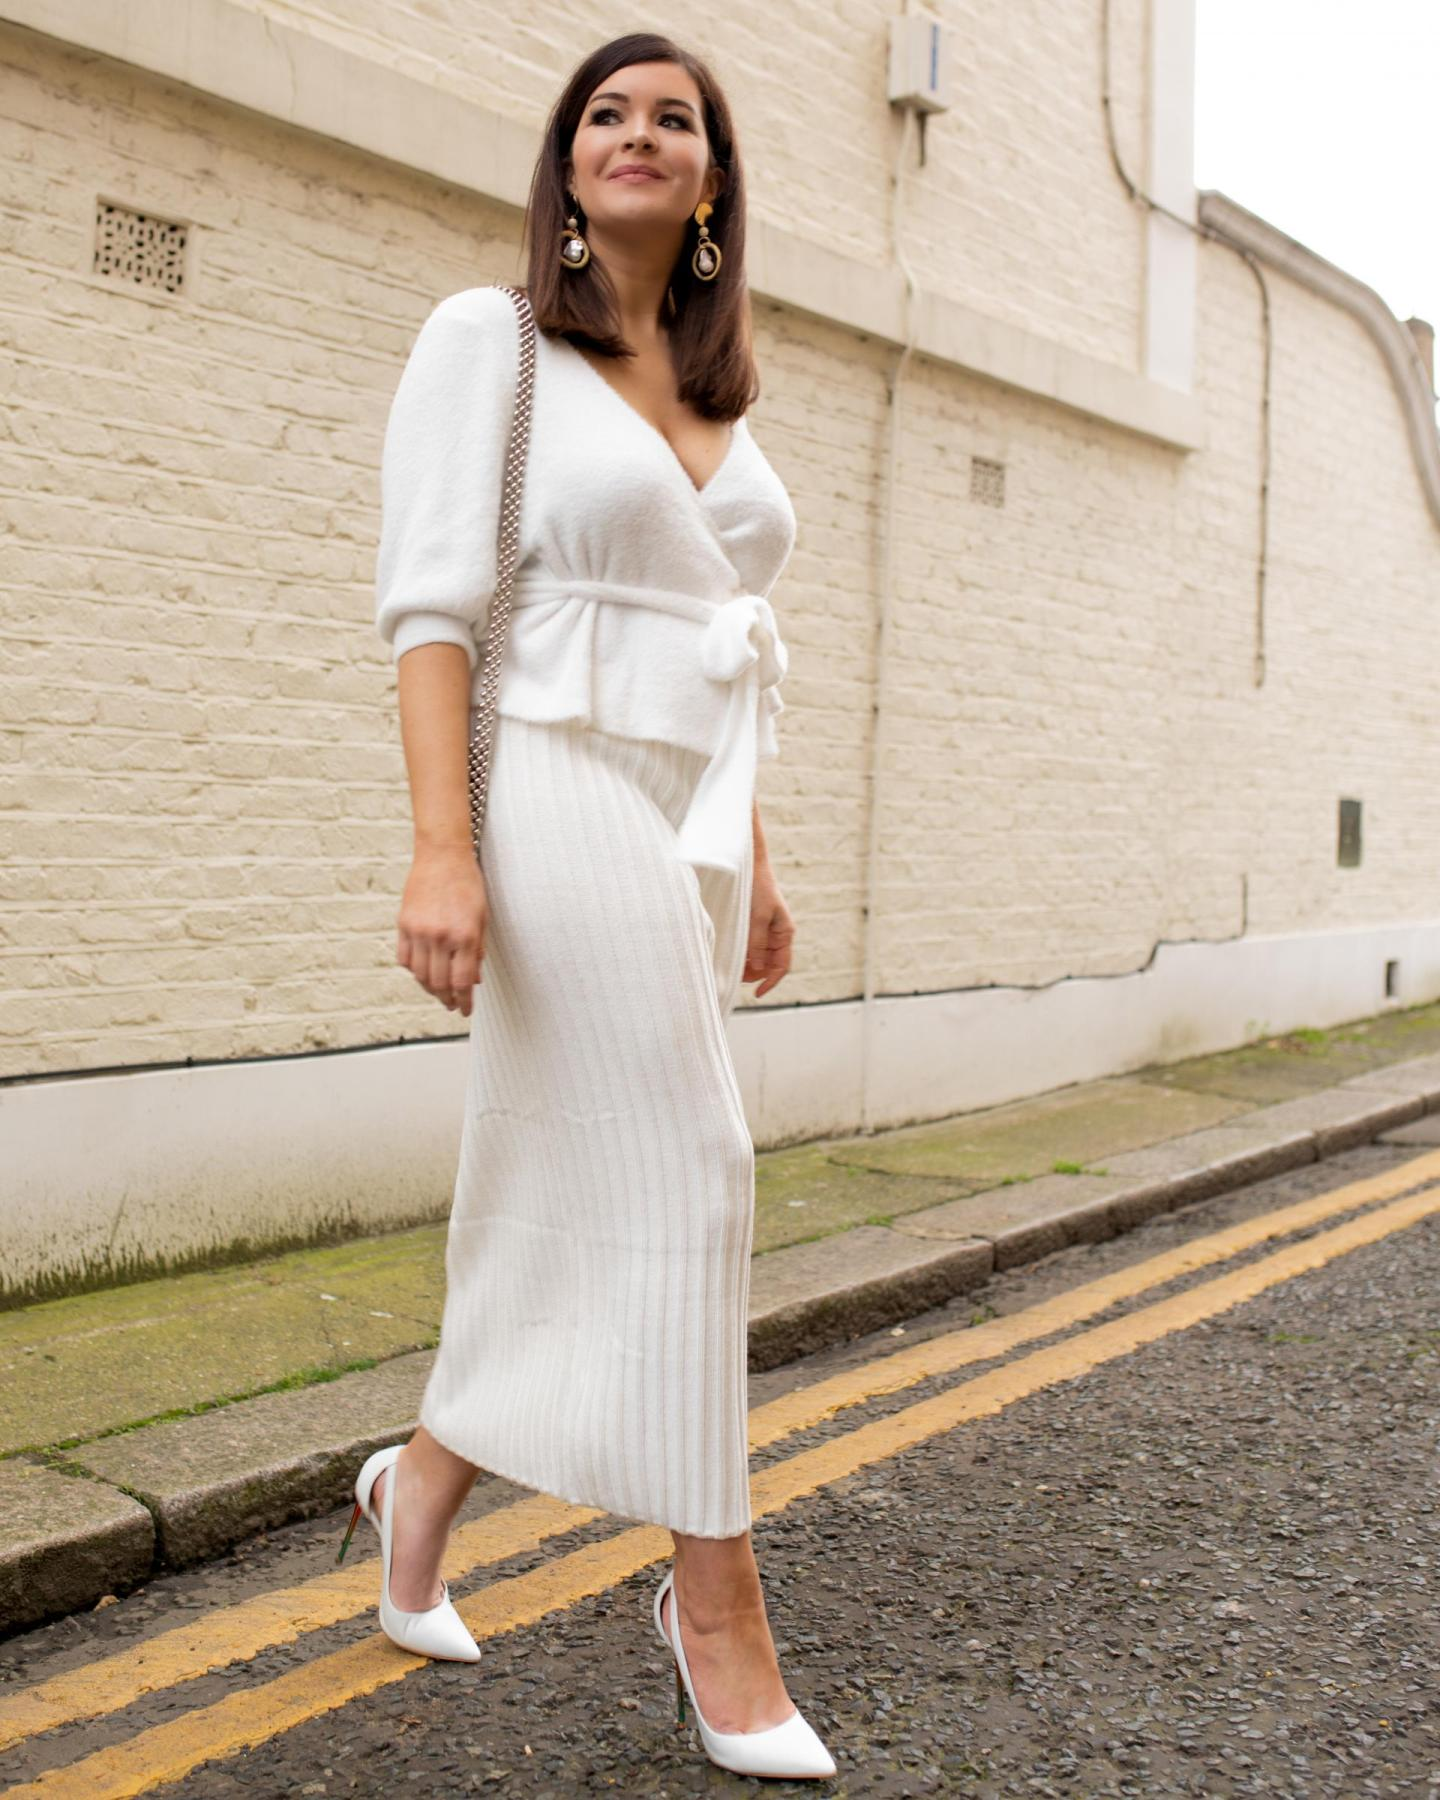 Winter To Spring: Textured White Co-ords